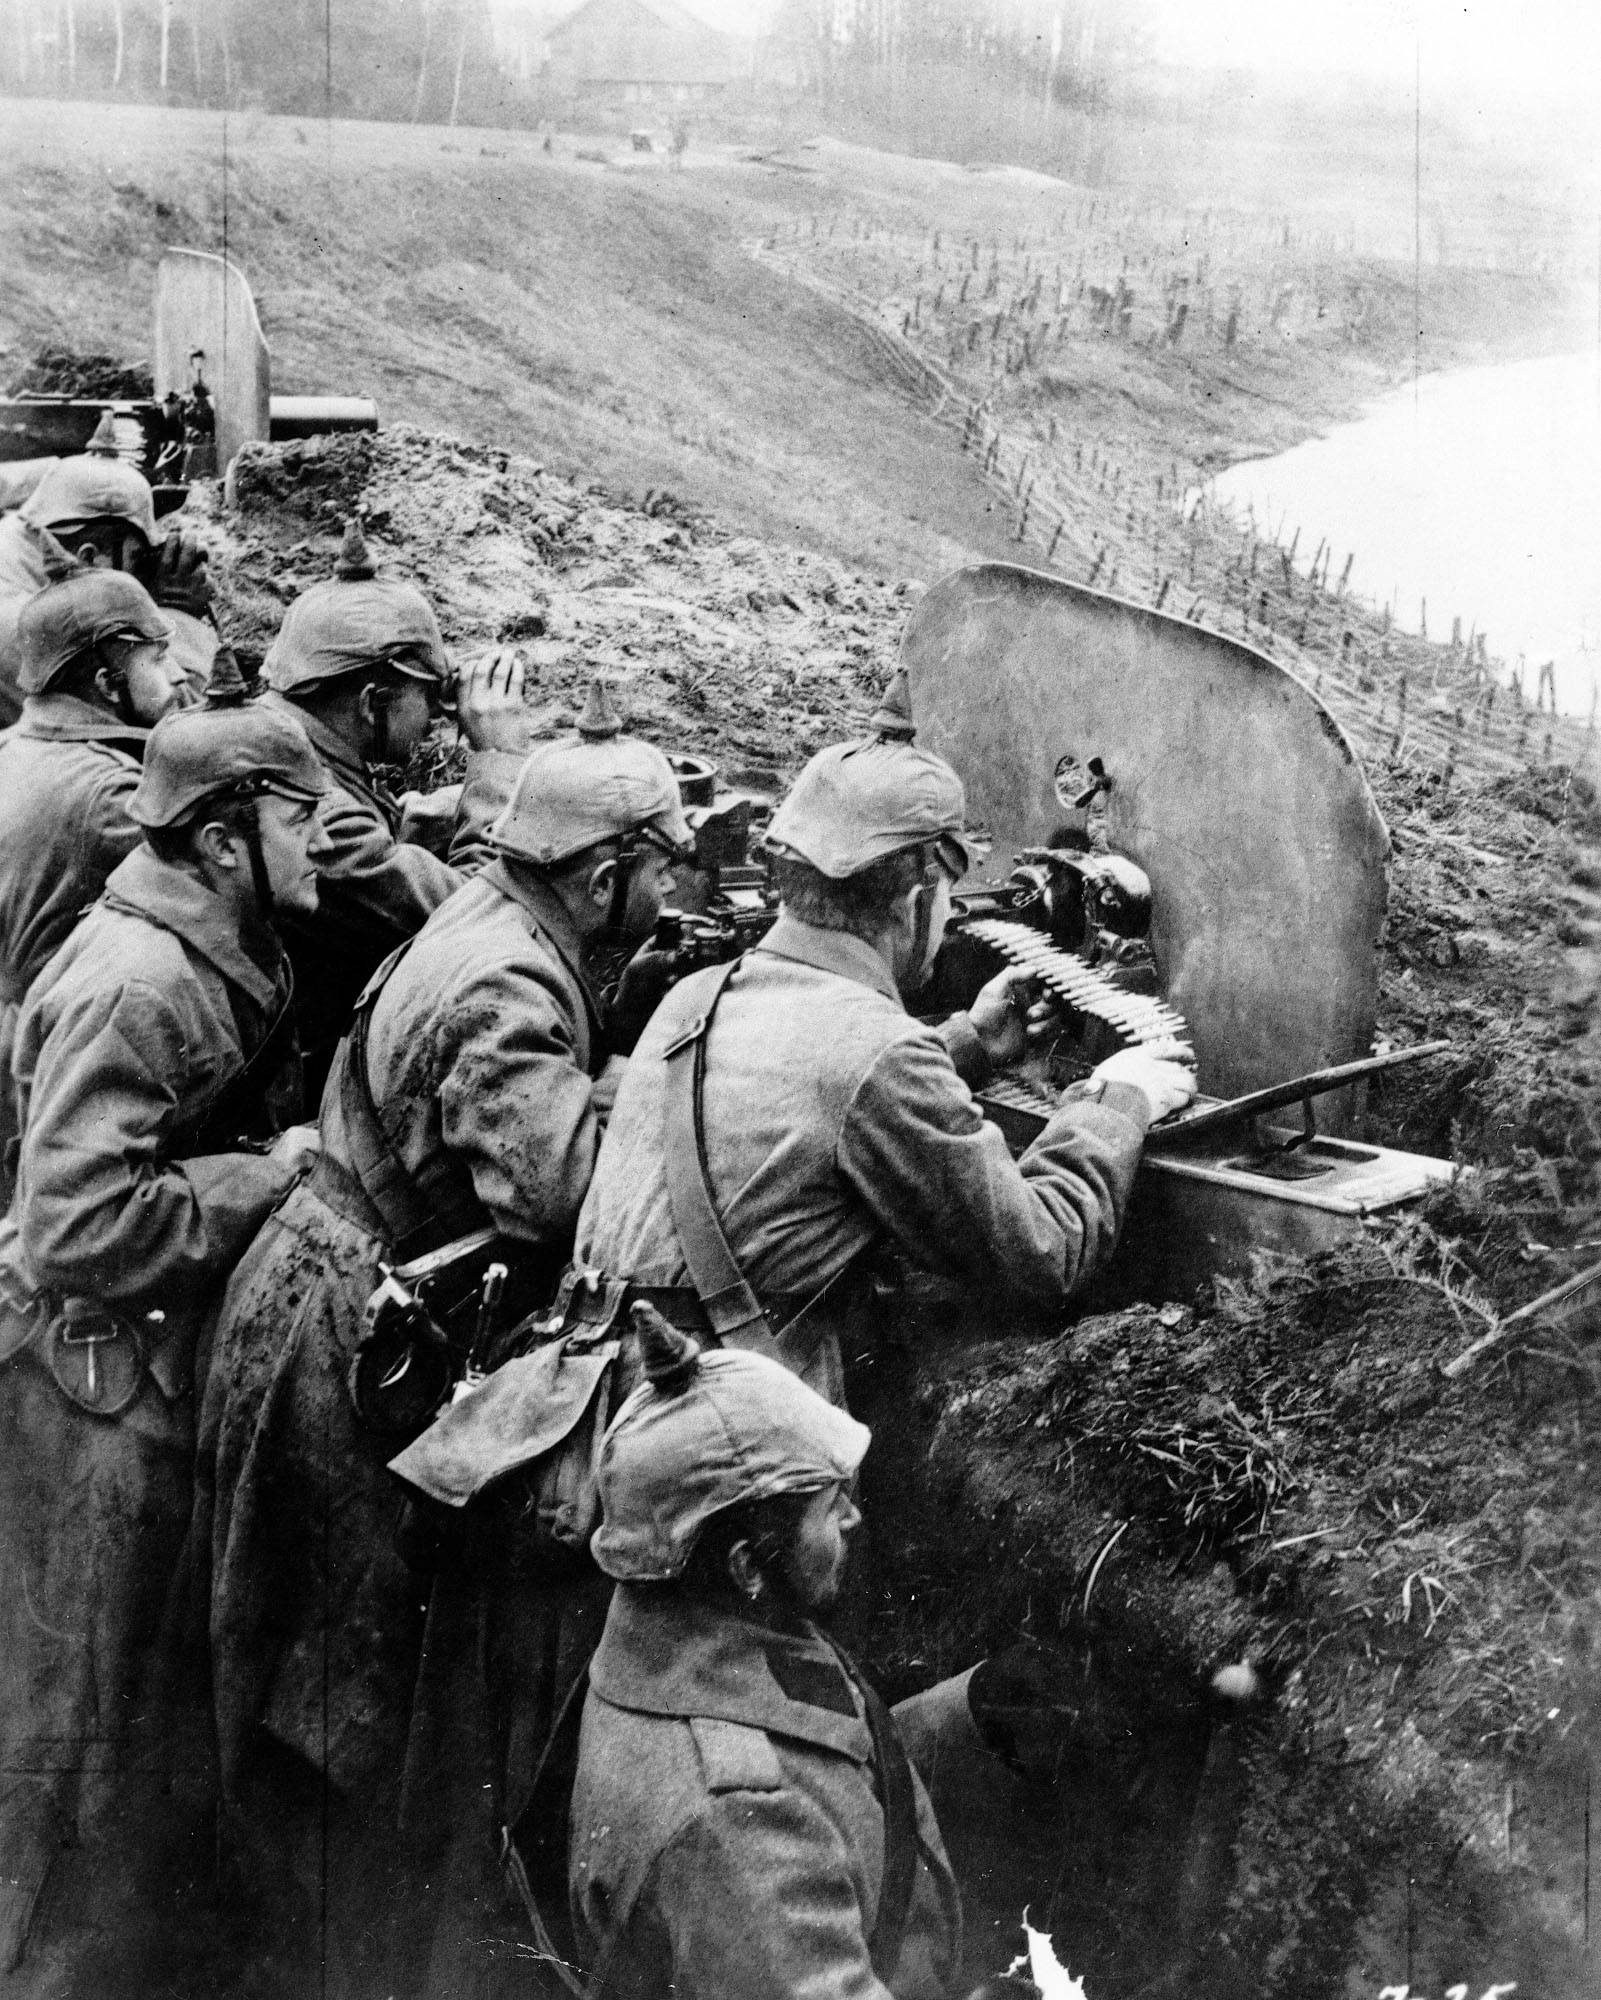 55 OF 100: In this 1916 file photo, German troops man a machine gun post from a trench at the Vistula River in Russia during World War I.